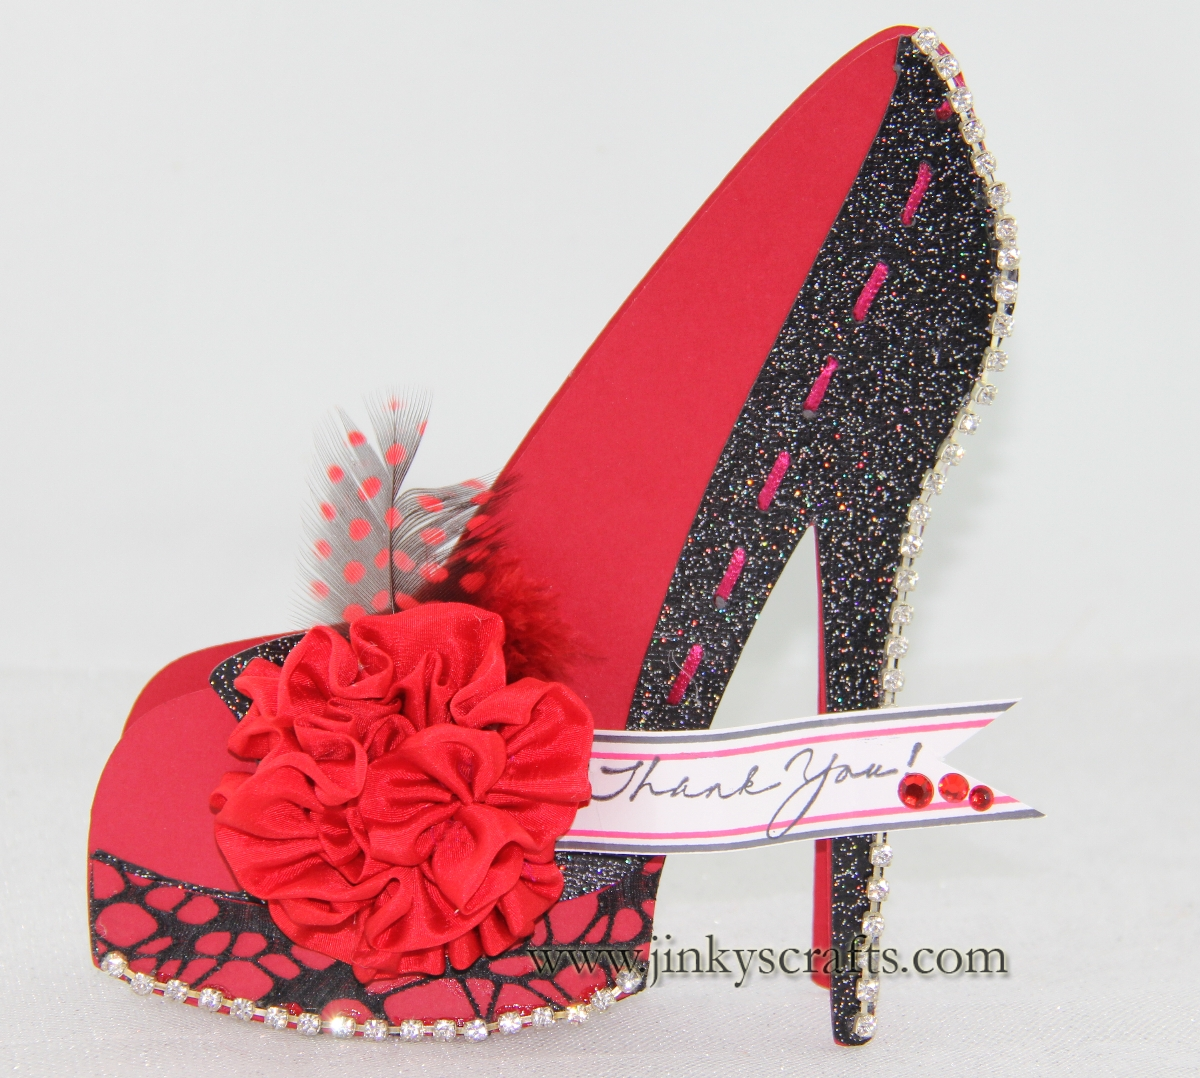 Jinky 39 s crafts designs high heel shoe 3d cards for High heel template for cards